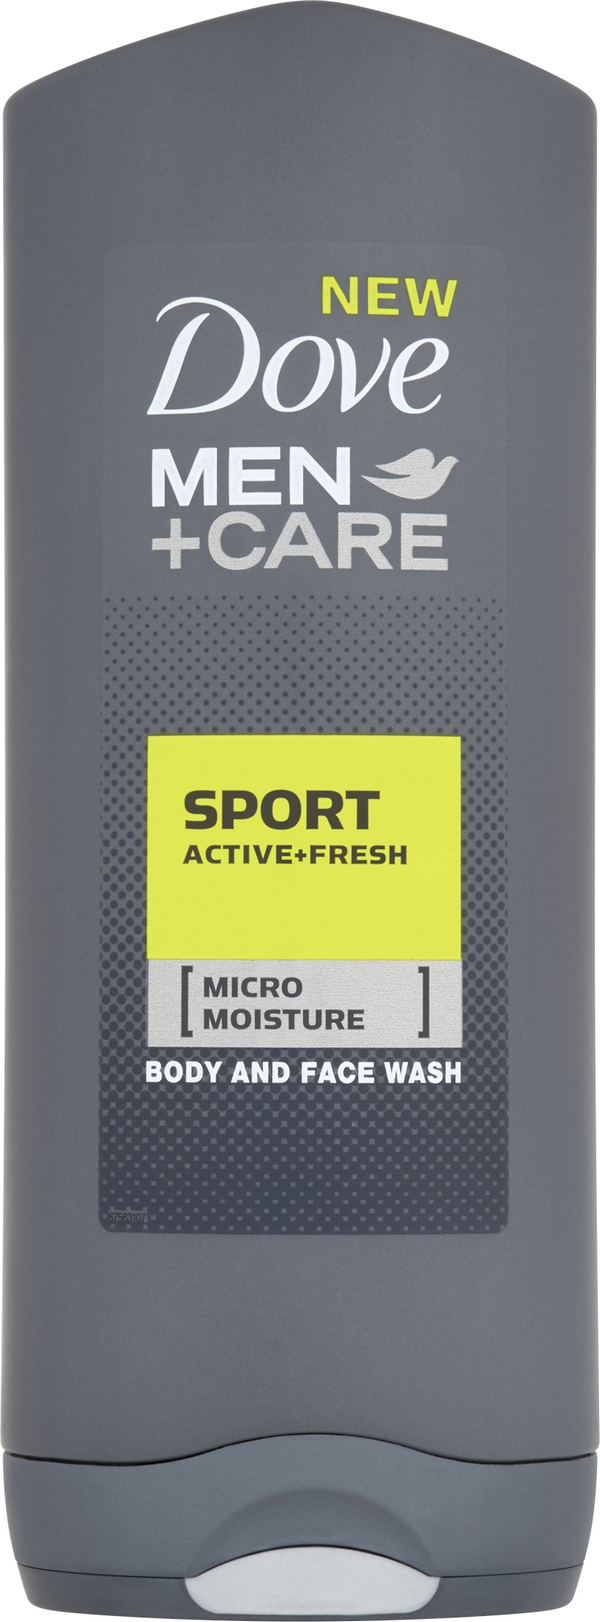 DOVE MenCare Sport Active Fresh Sprchový gel 400 ml